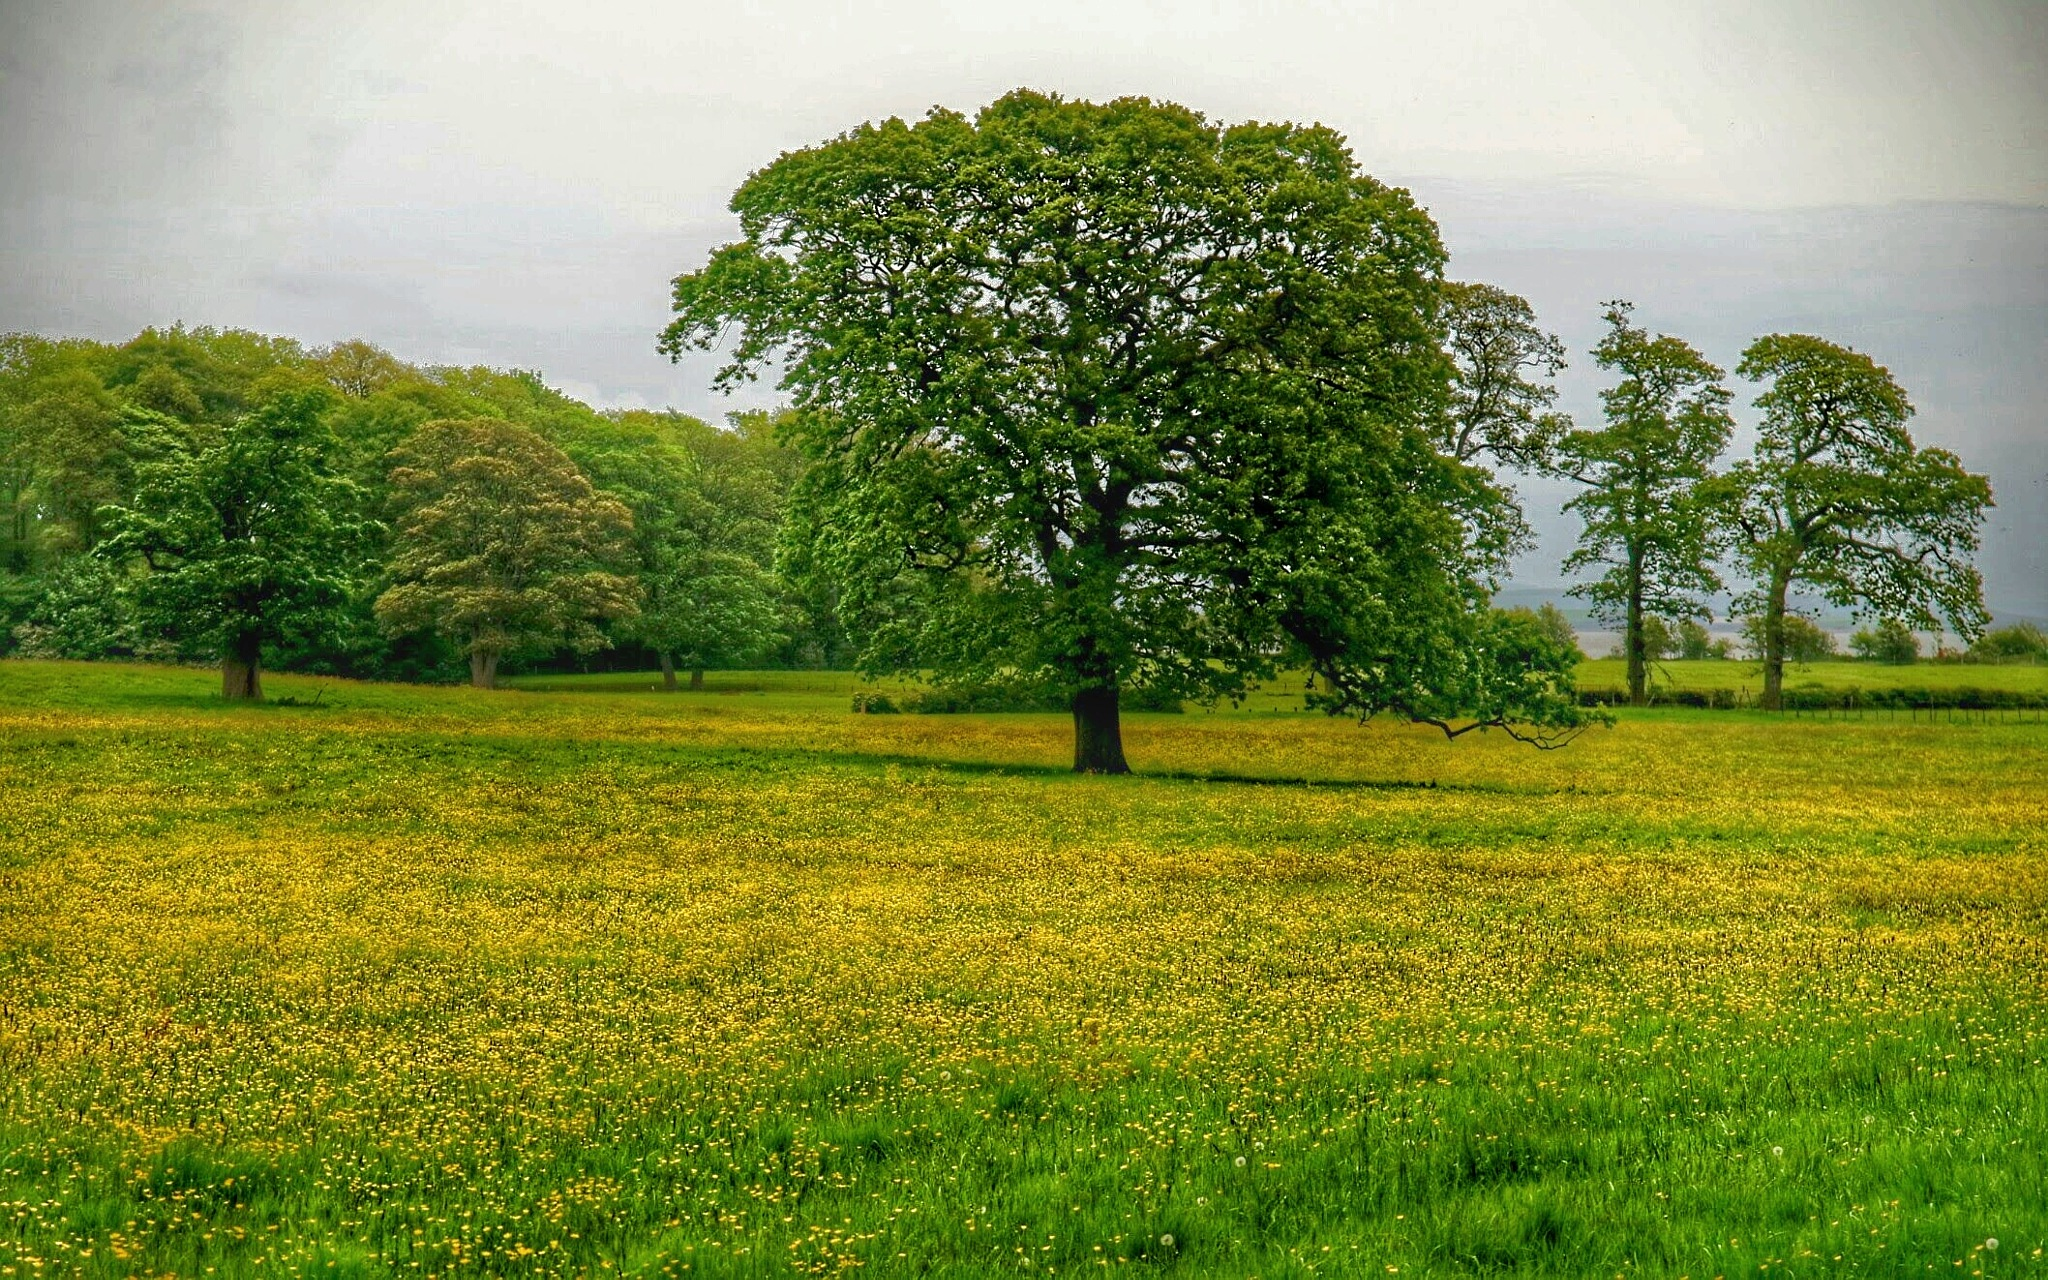 Green and Yellow...080601 by Michael jjg